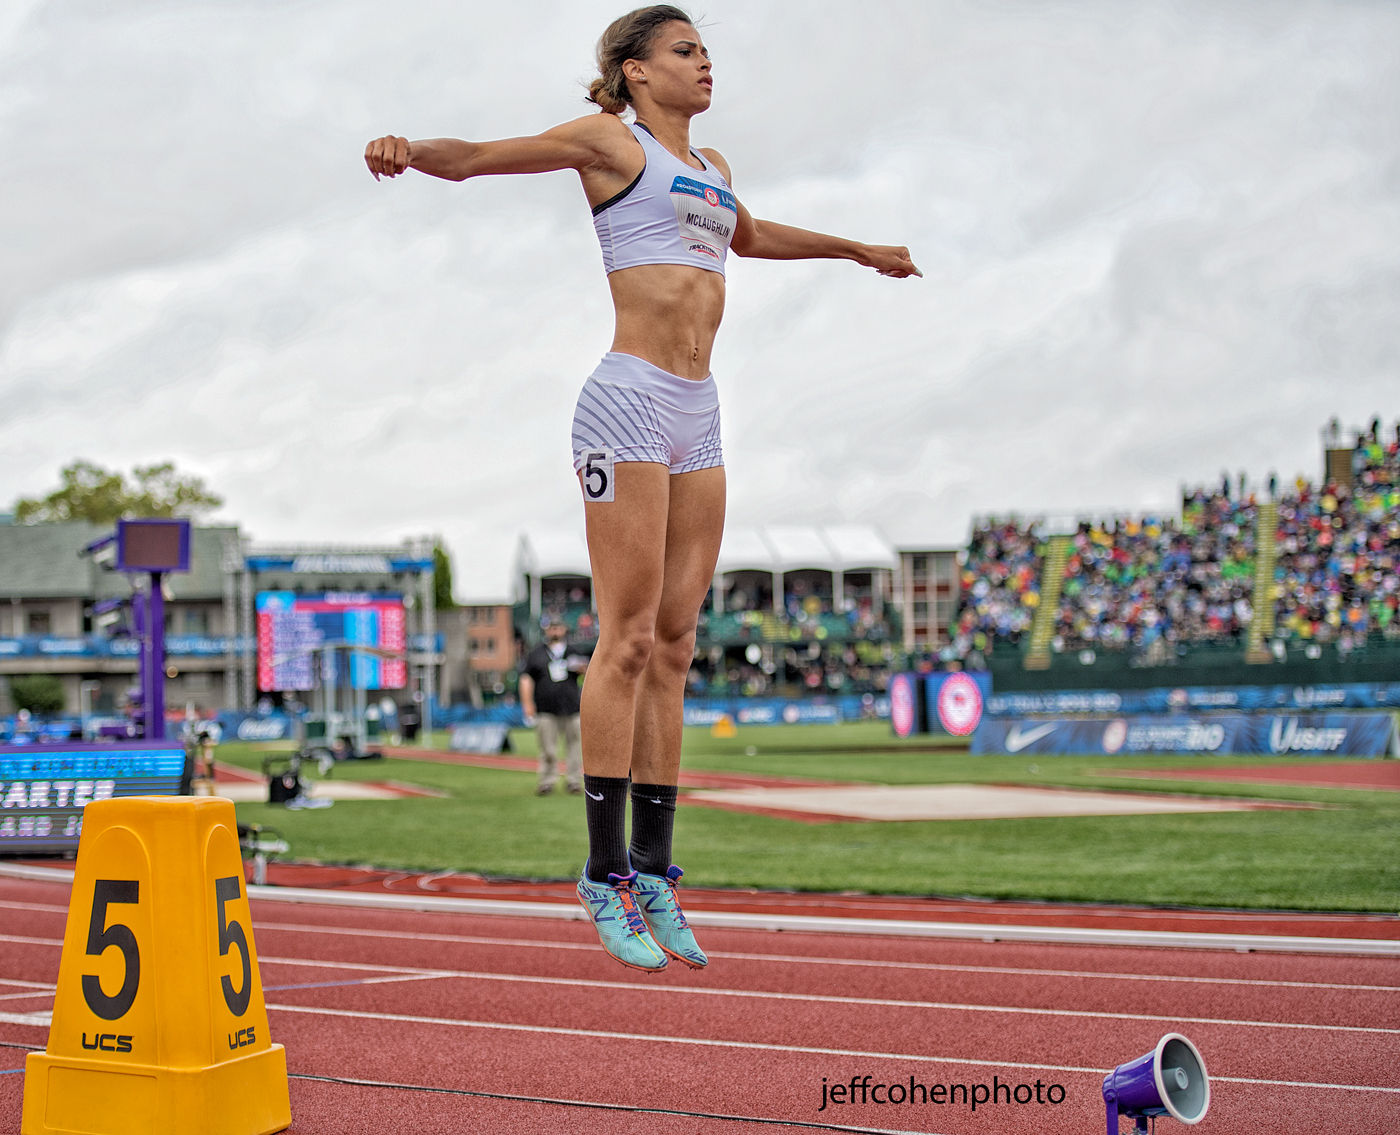 522_1r2016_oly_trials_day_9_sydney_mclaughlin_400hw_jump_jeff_cohen_photo_28066_web.jpg